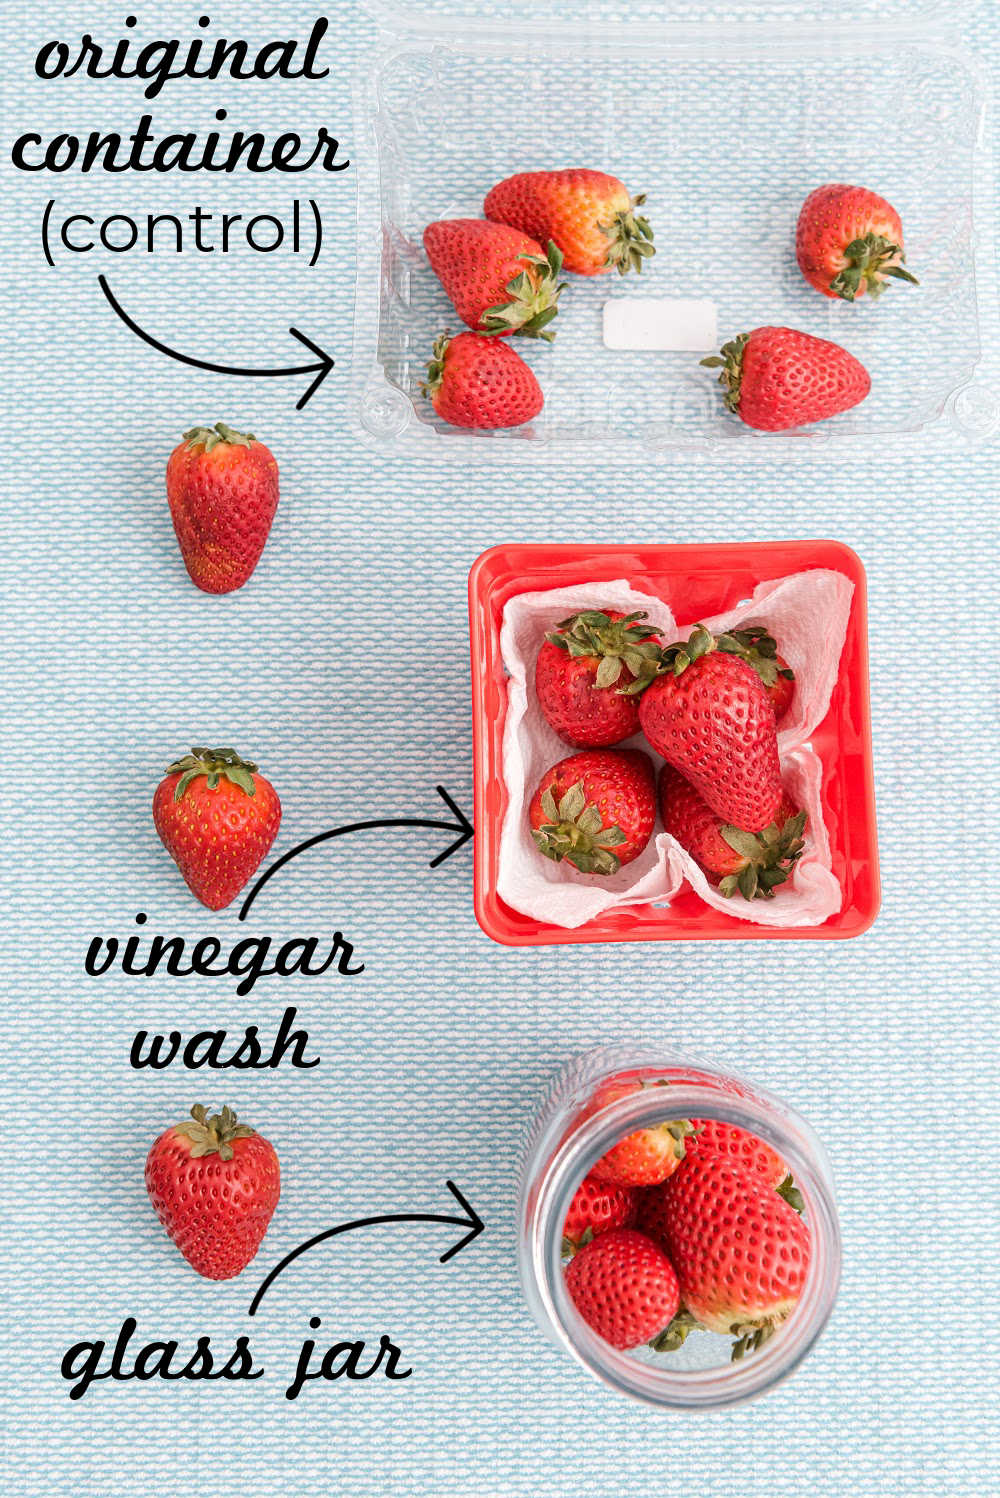 How to make Strawberries Last Longer - 2 Methods